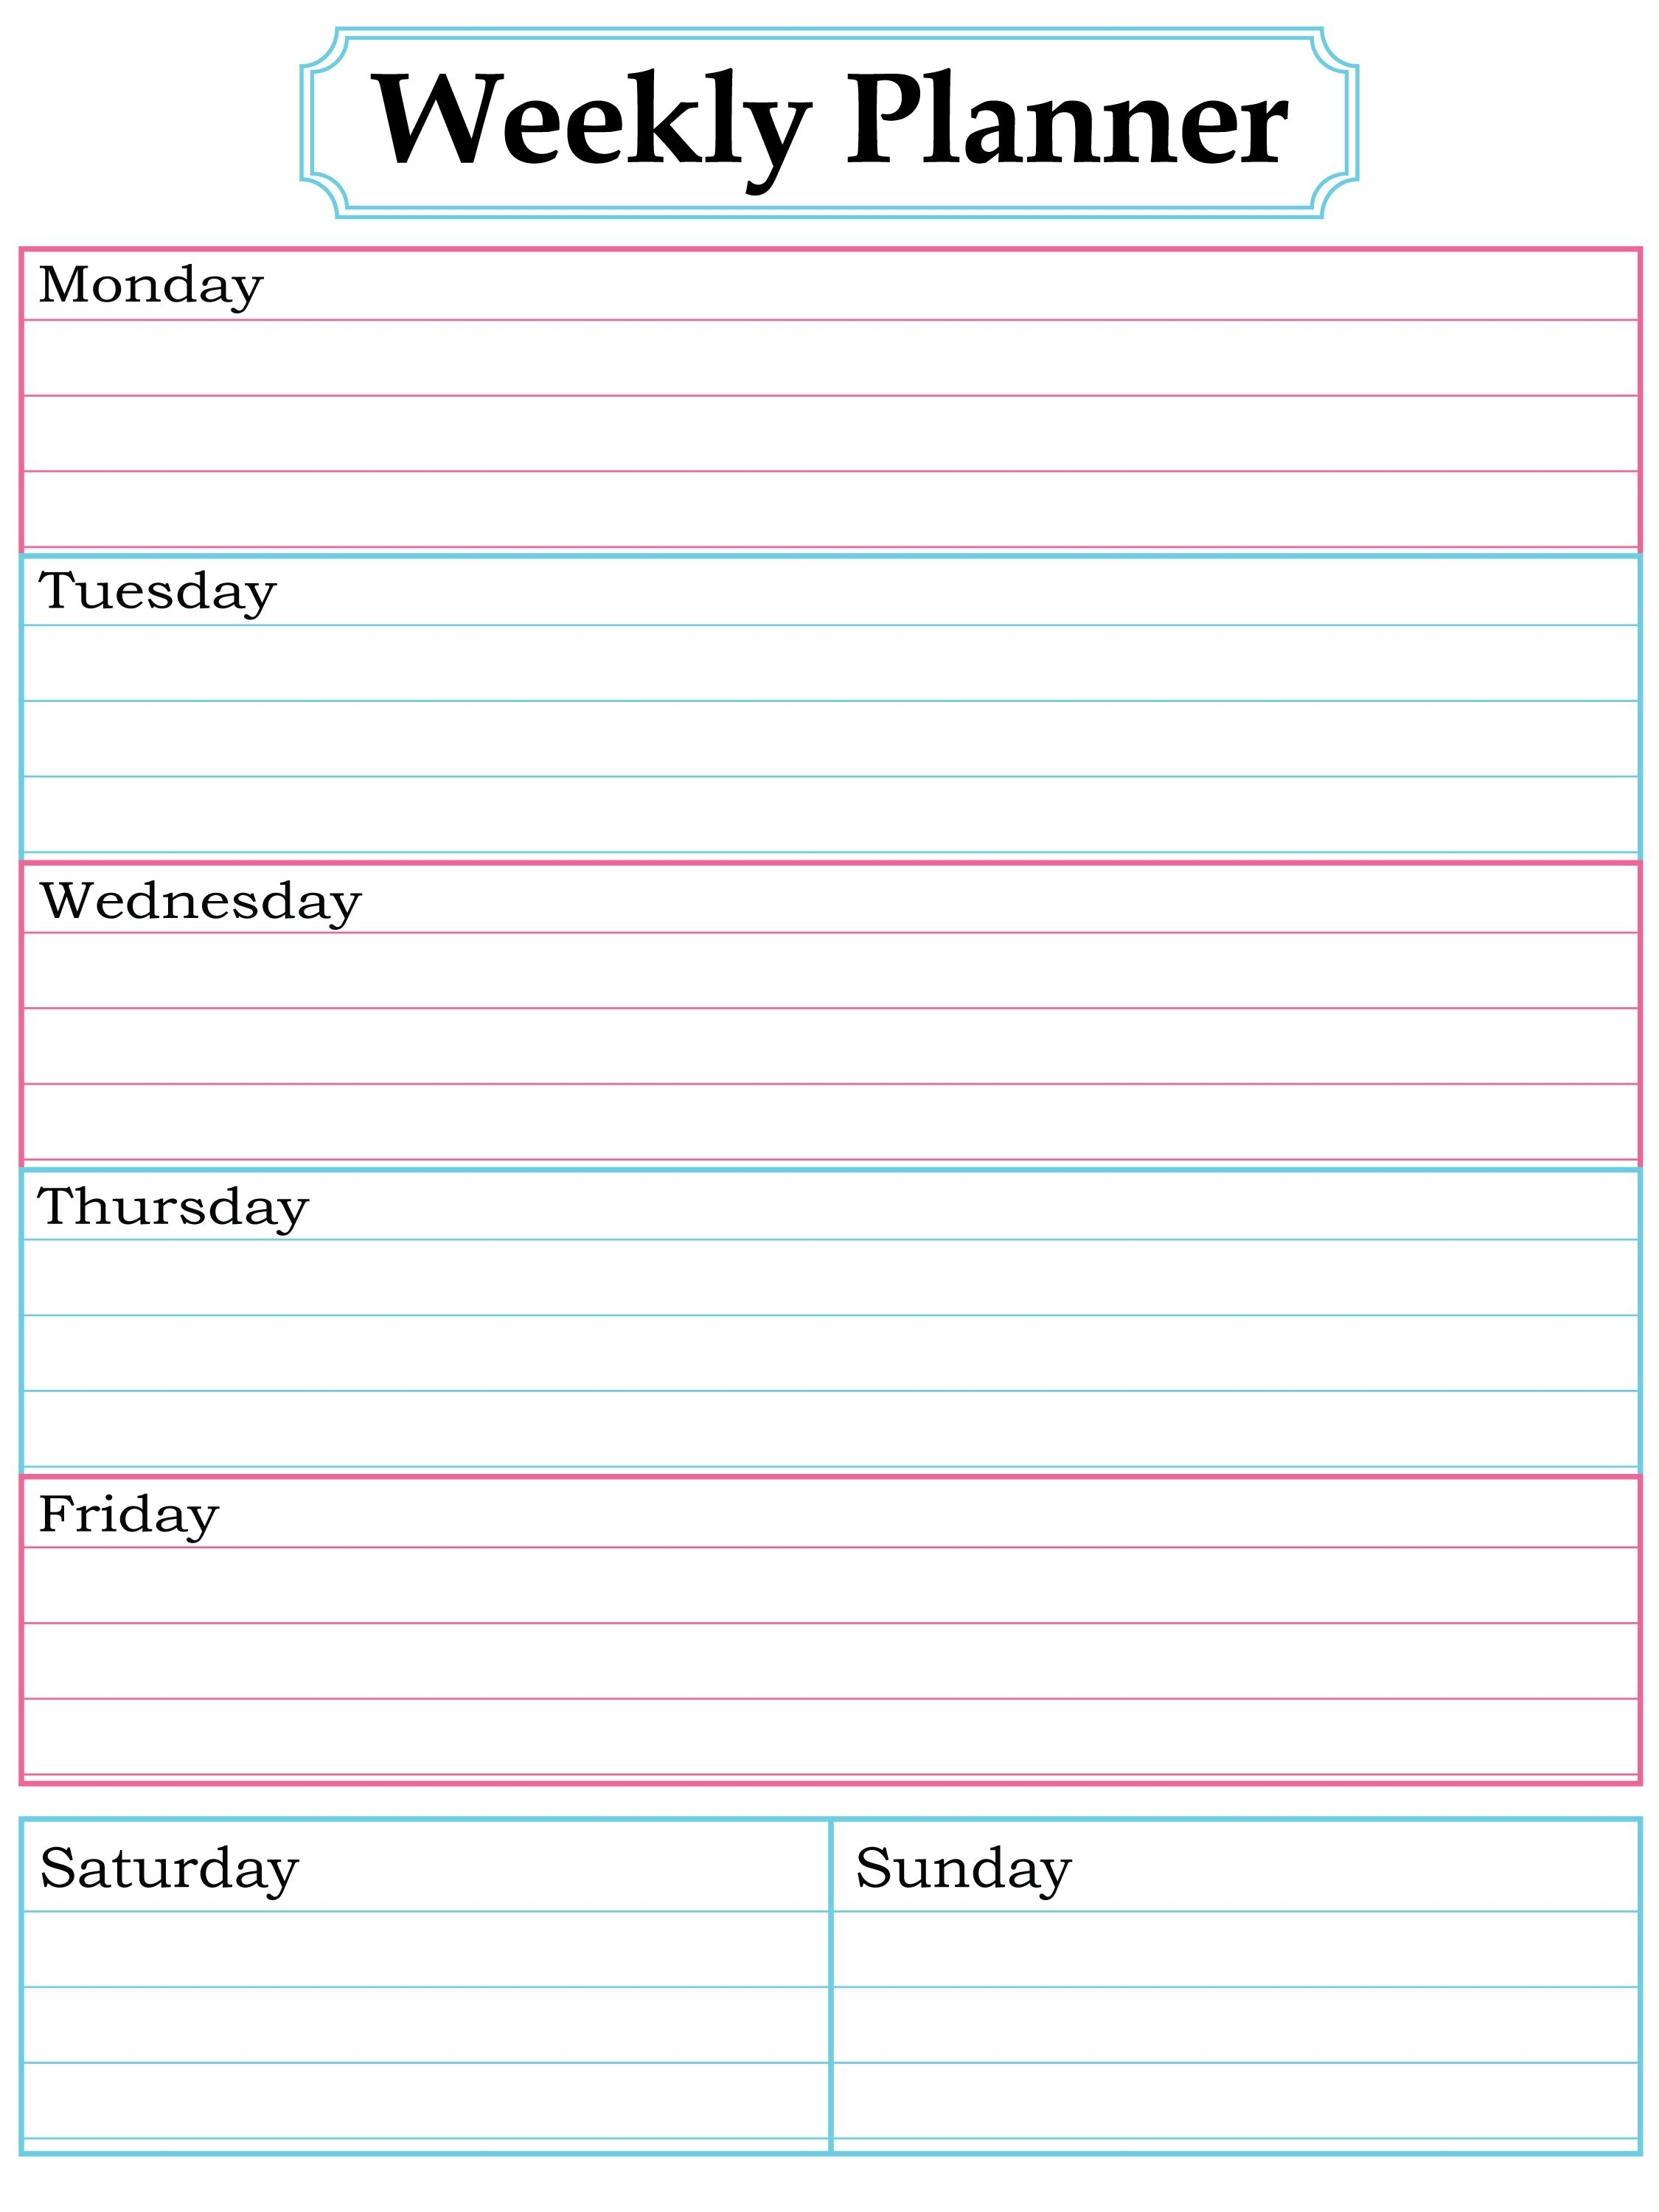 Pinterest  Monday To Sunday Schedule Template